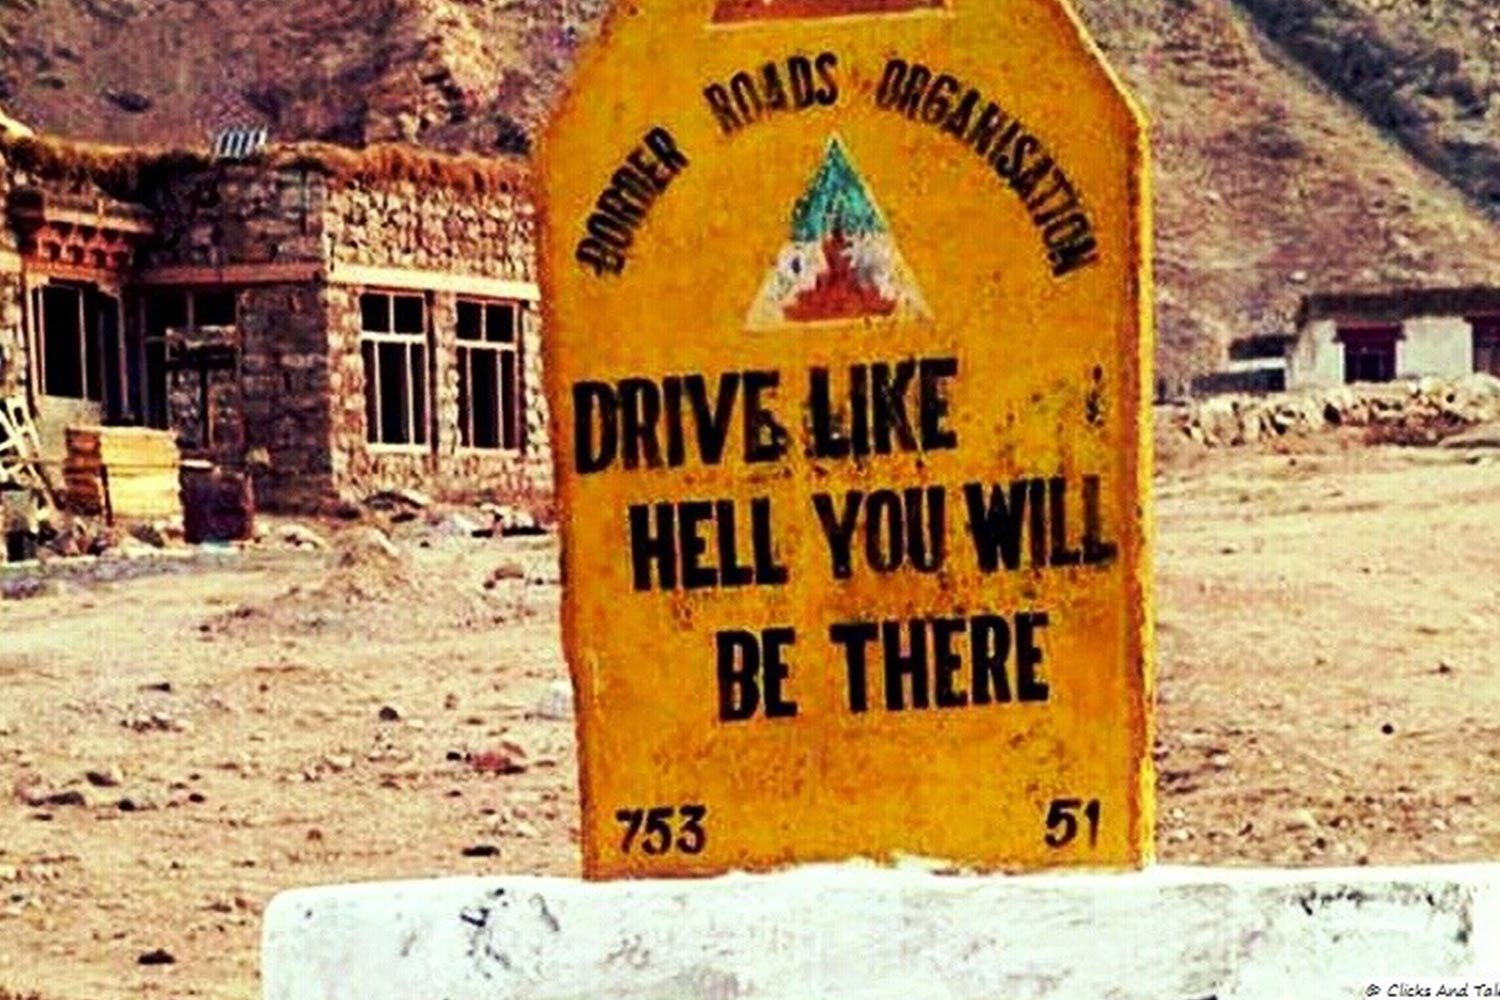 Funny Signboards-Drive like hell you will be there